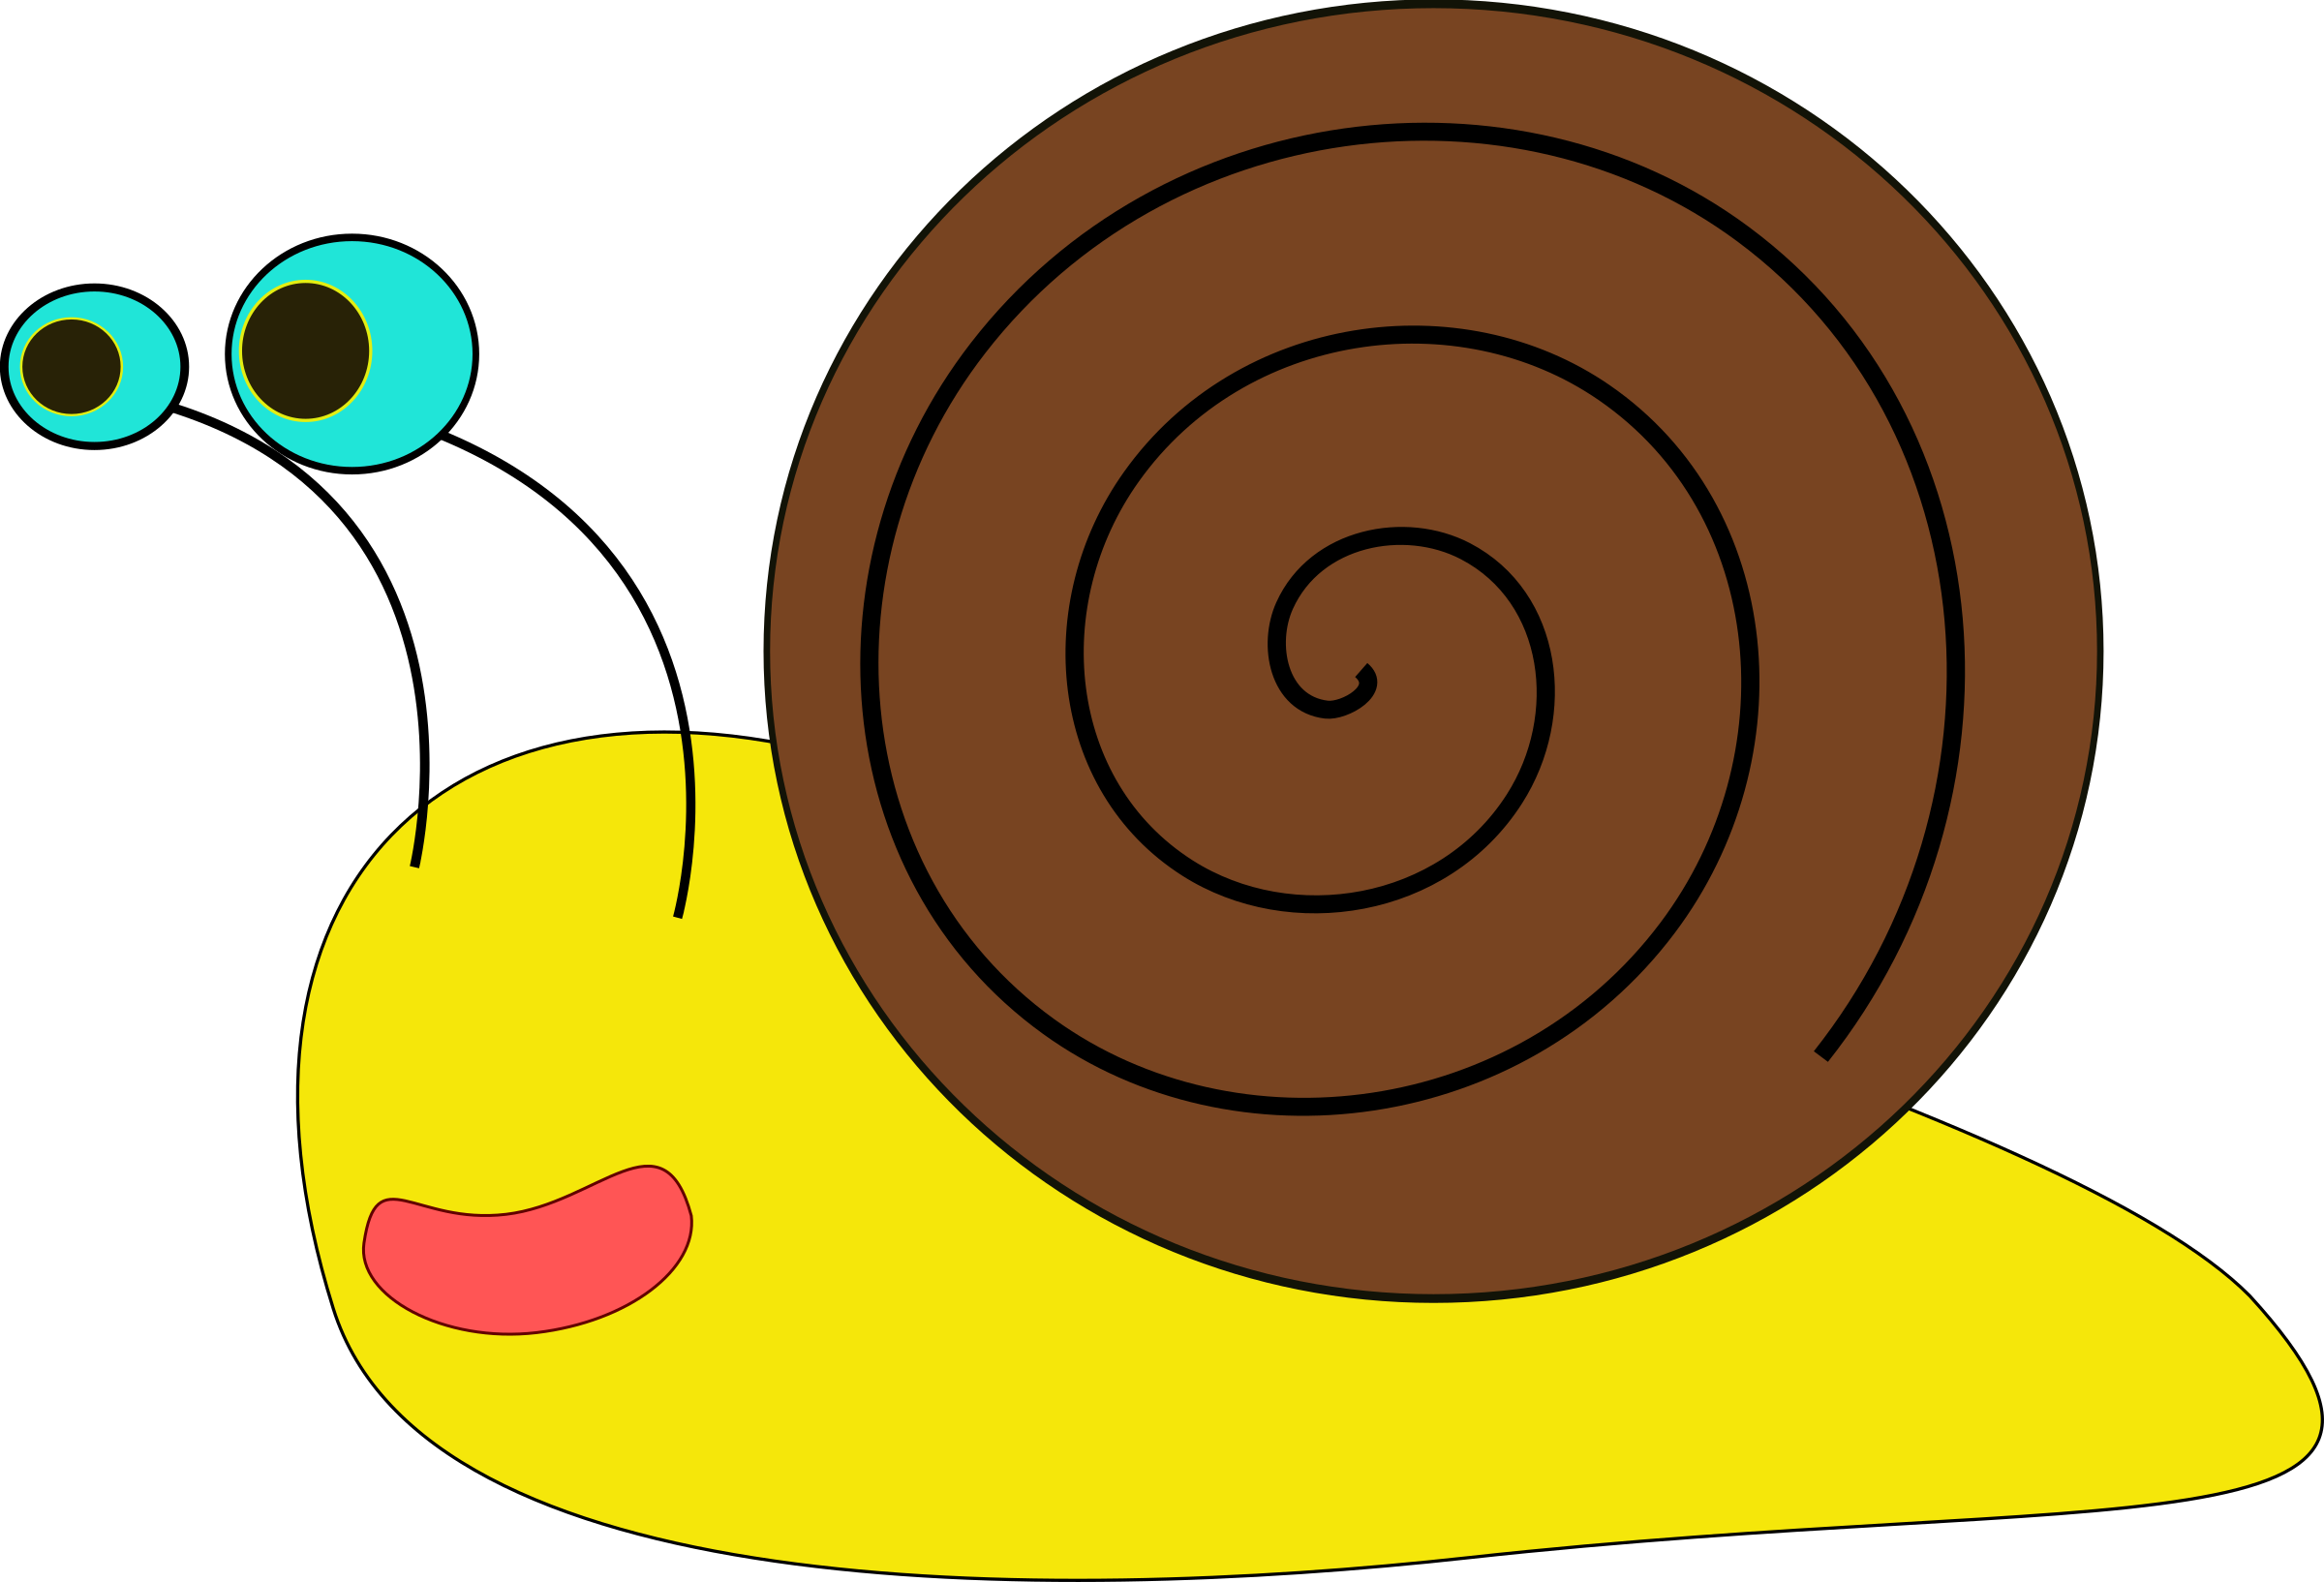 freeuse download snail by Machovka